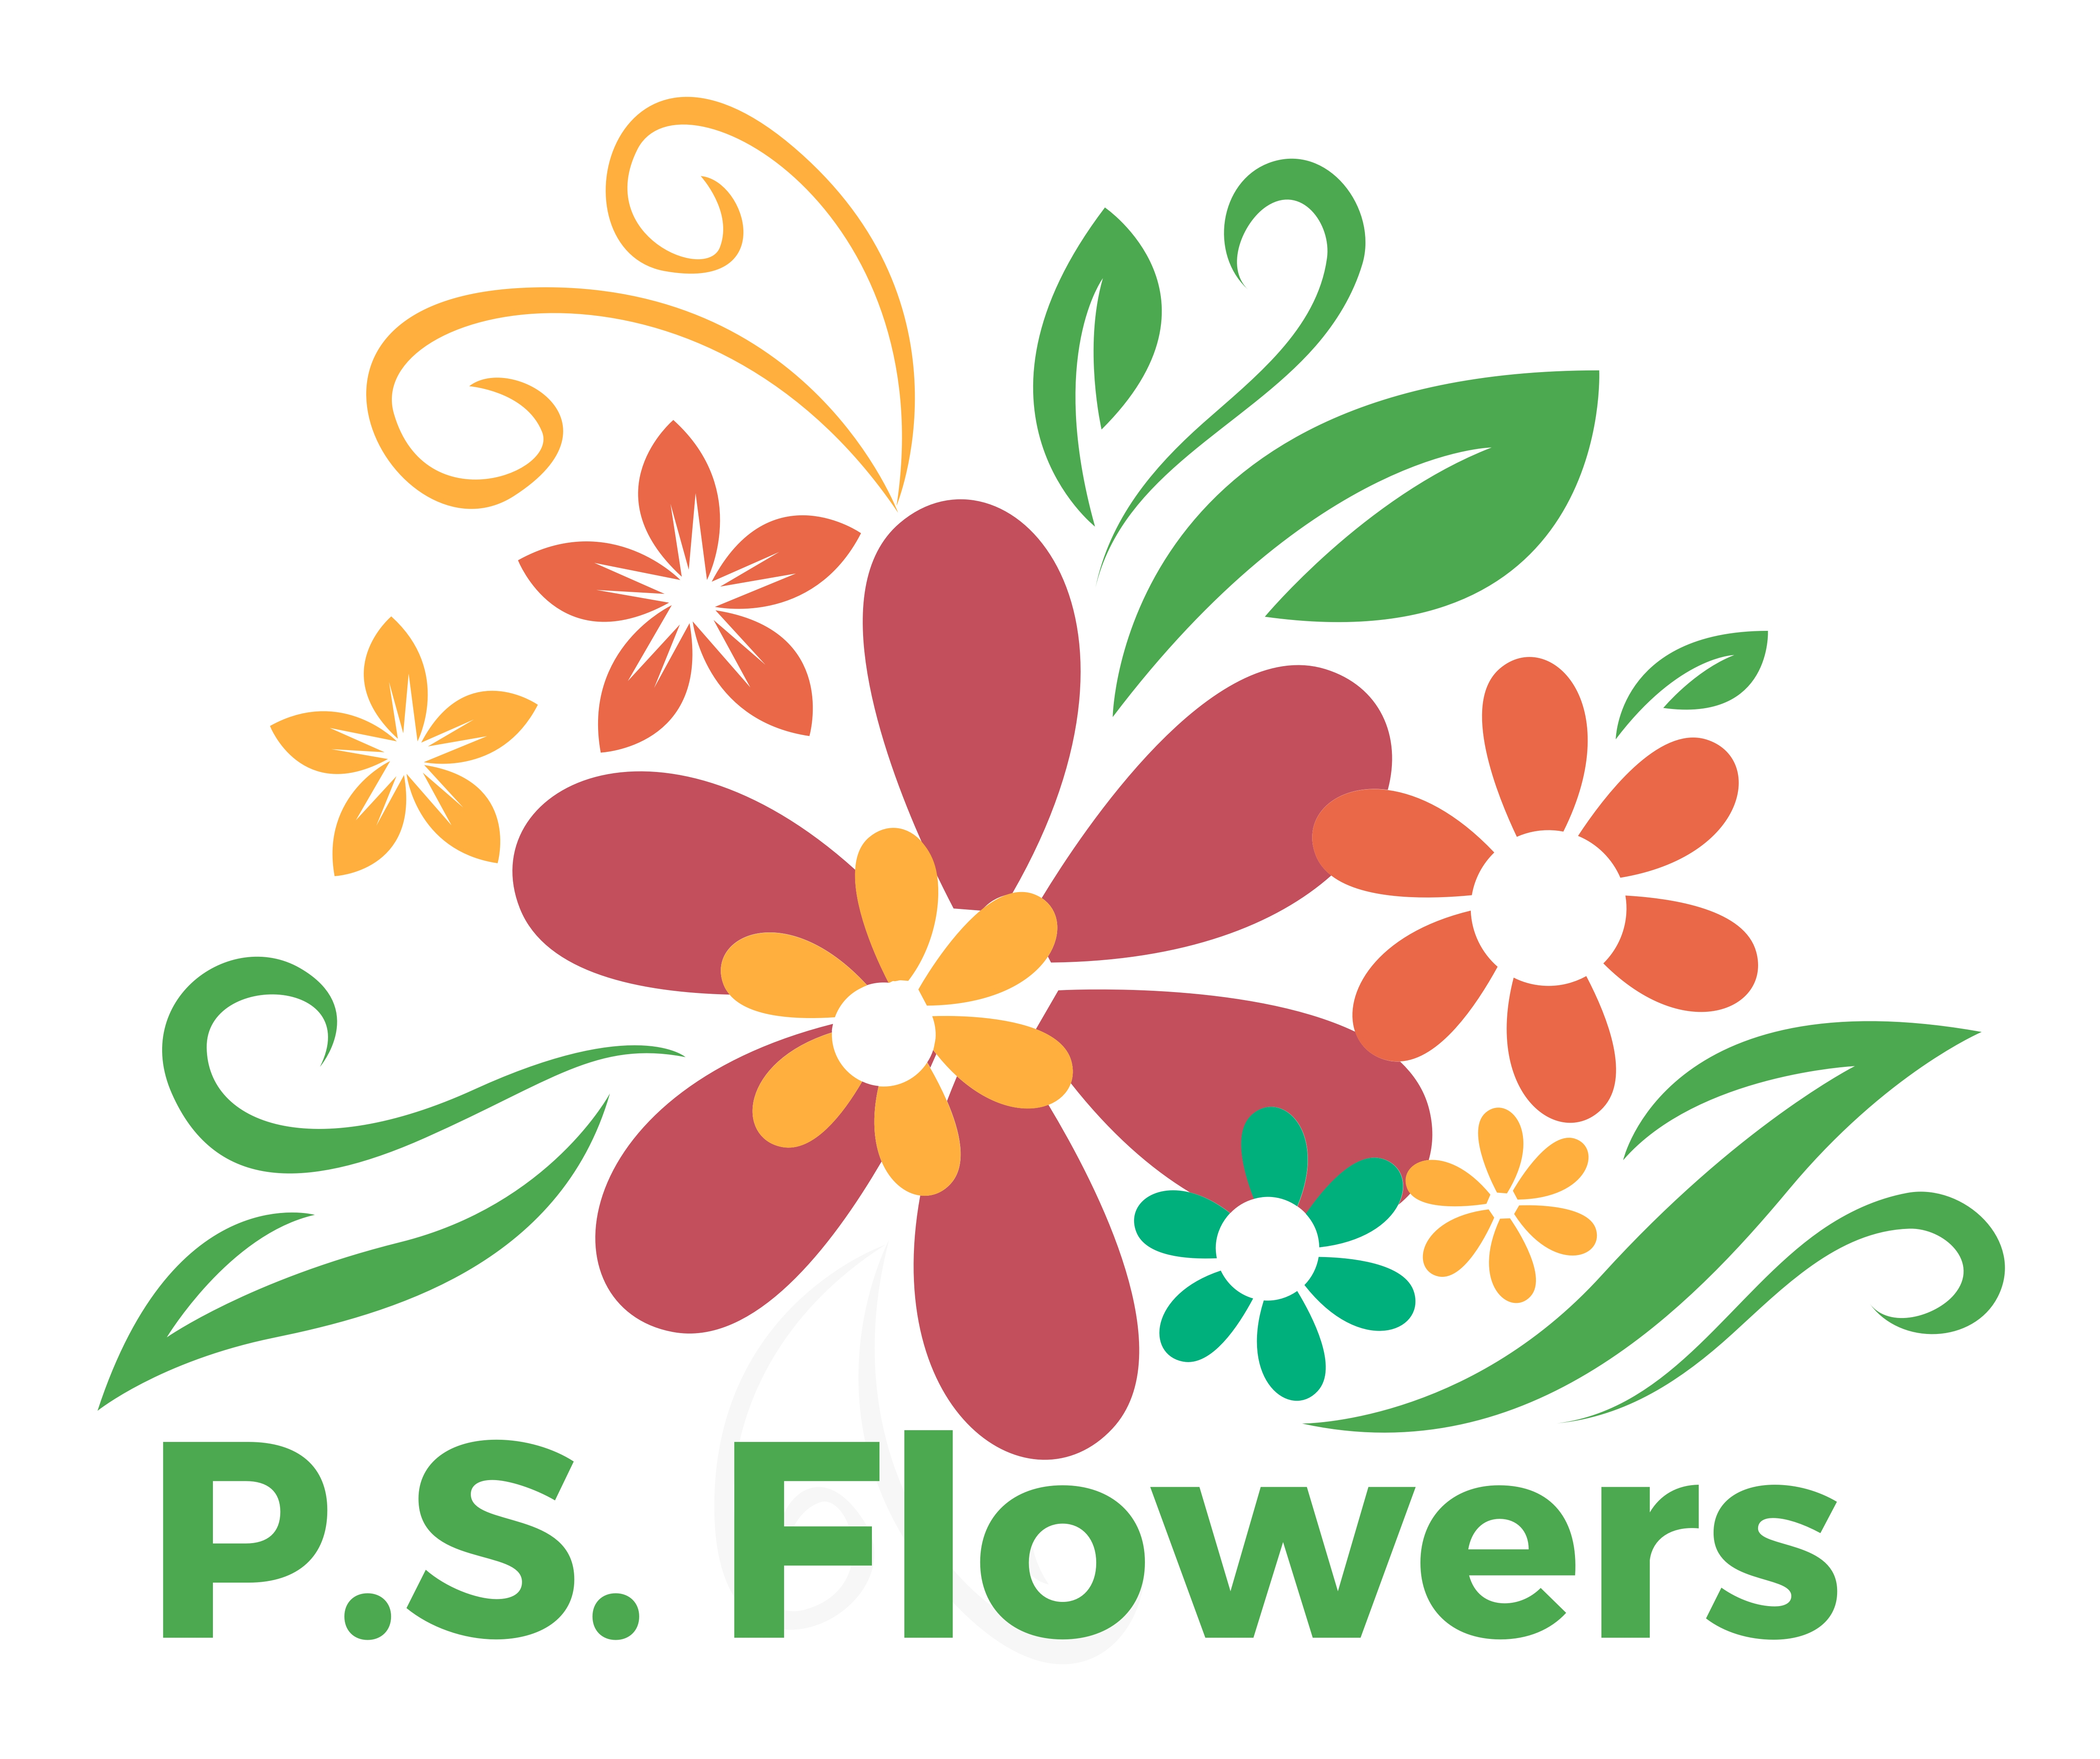 PS FLOWERS